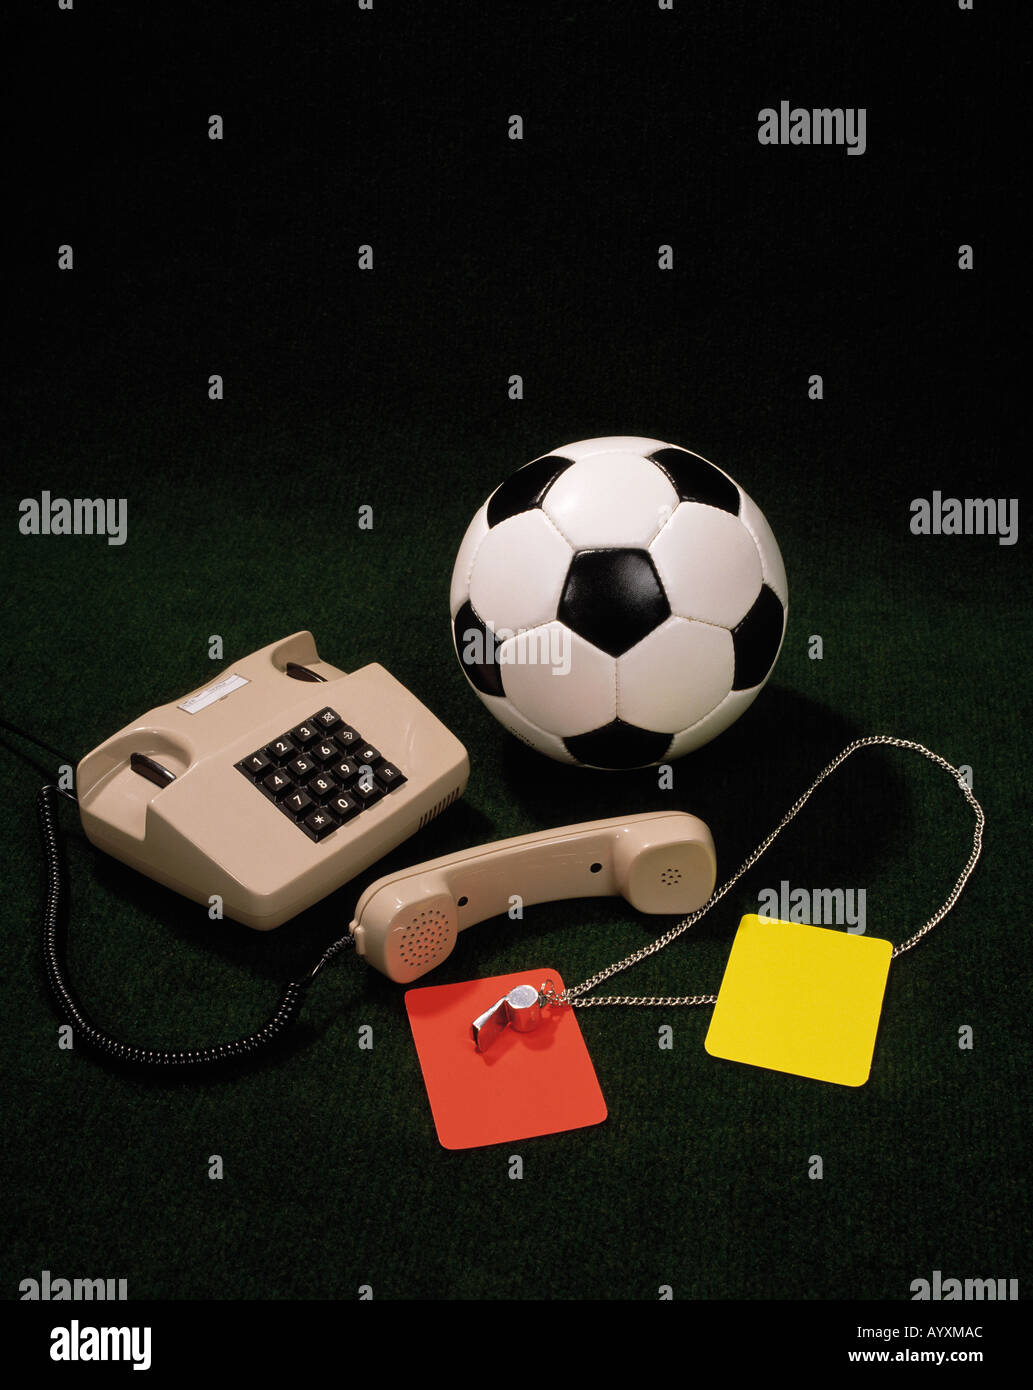 sports, football, ball, red and yellow card, referee whistle, telephone, receiver, symbol, symbolic, symbolism, - Stock Image